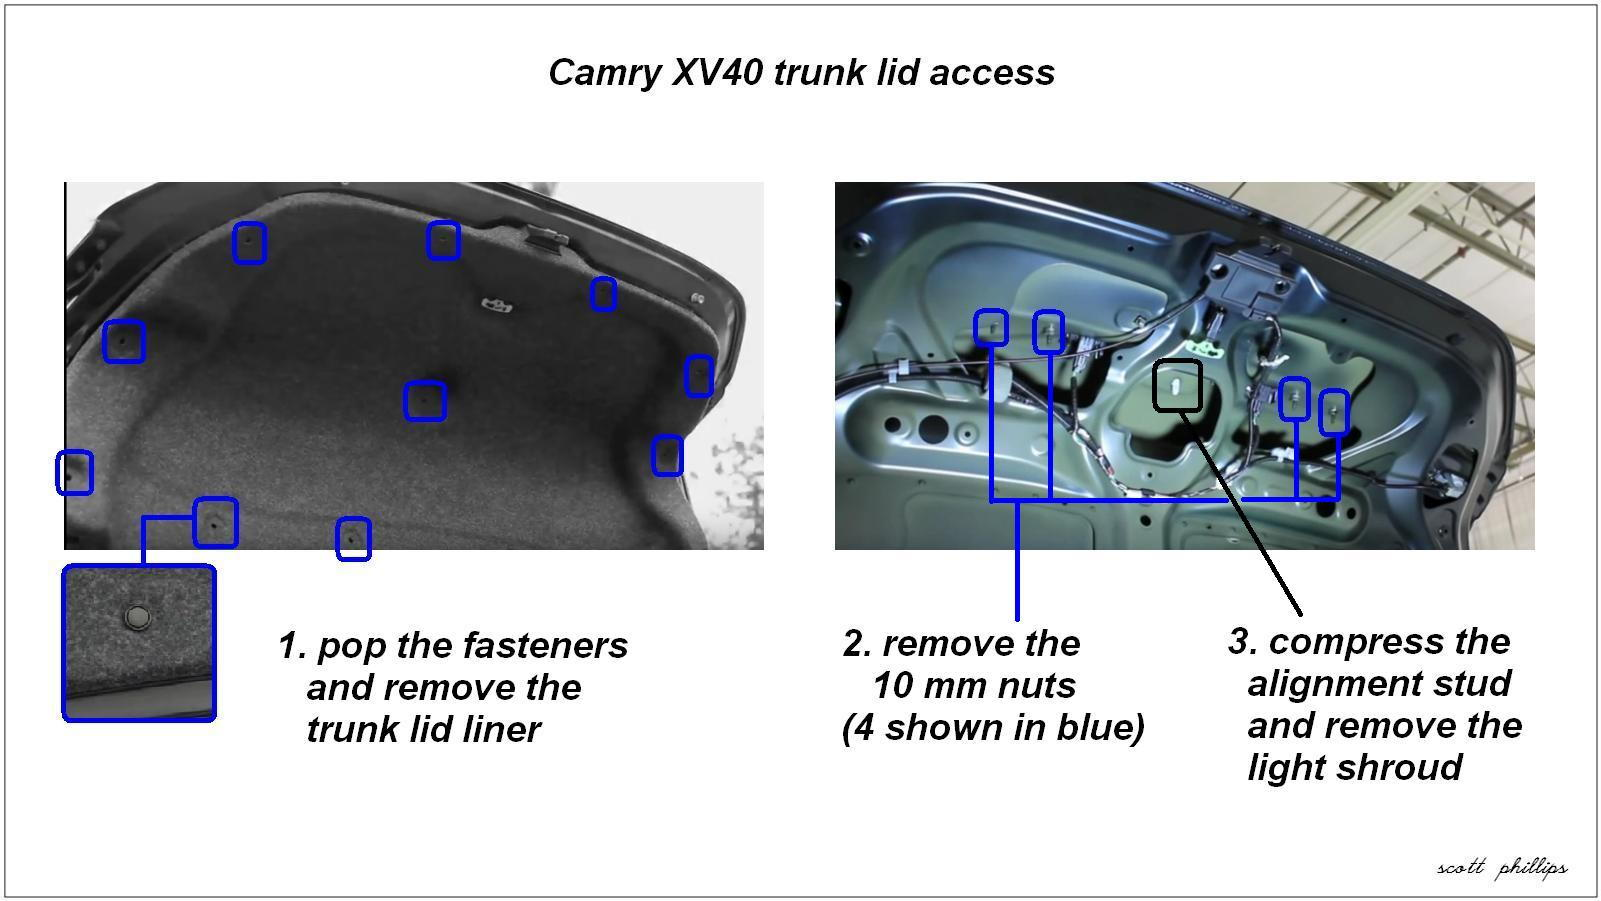 2 CamryXV40 Trunk LidAccess 86551 toyota camry 2007 2011 how to install rear view backup camera 2007 Toyota Avalon Wiring-Diagram at bayanpartner.co